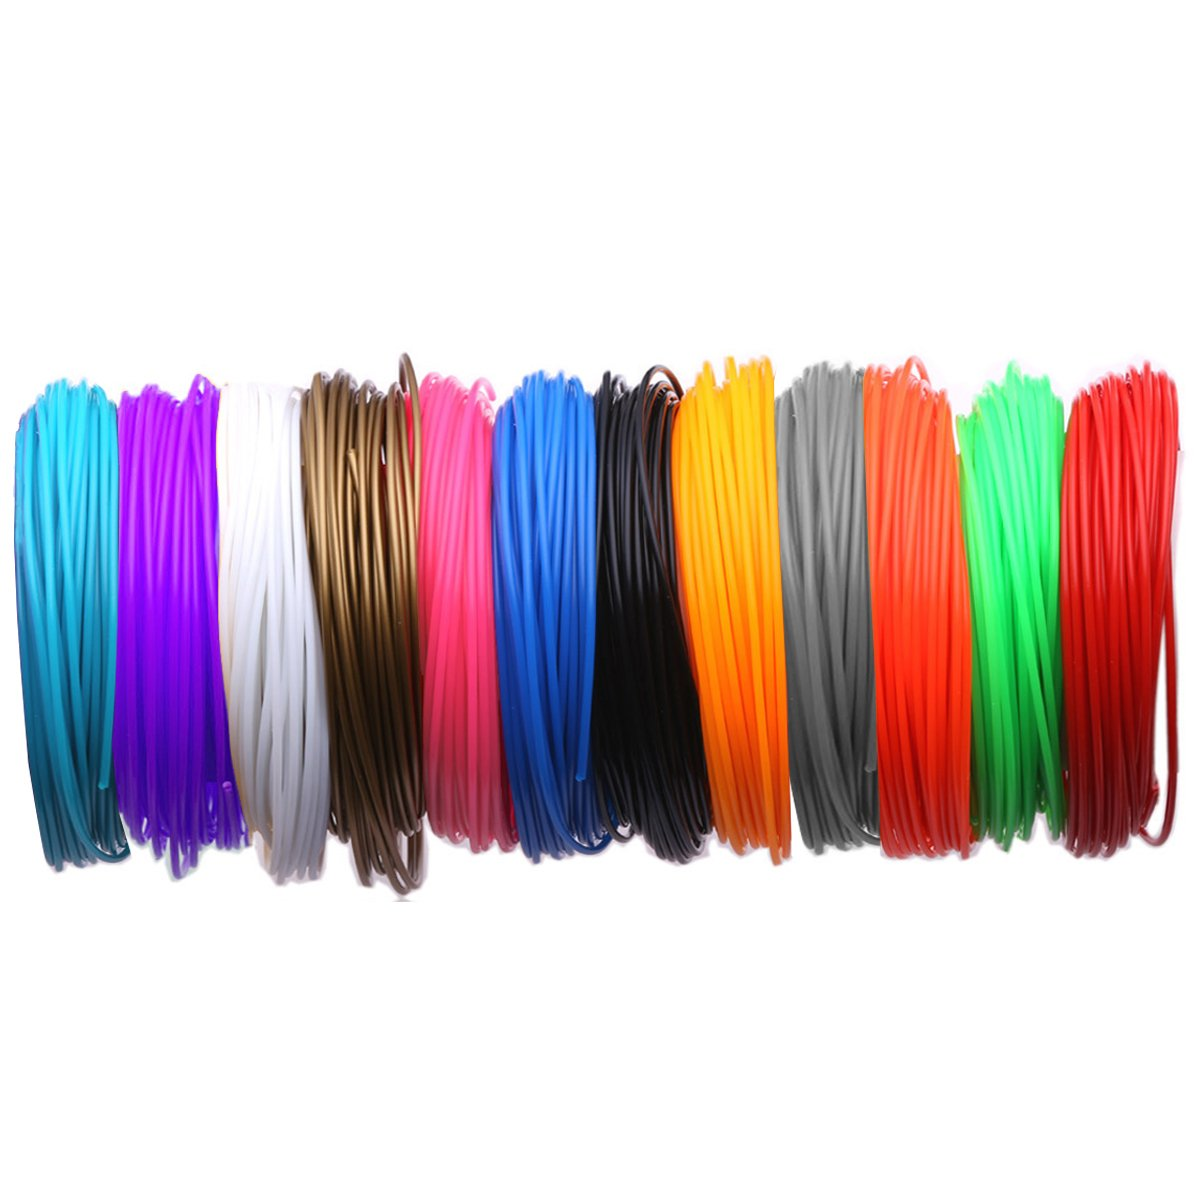 3D Pen PCL Filament Refills - 3D Pen Refill - 1.75MM 3D Doodler Den Refills - Real Stuff,Blockage-Proof (12 Colors,16.4 Ft Each)